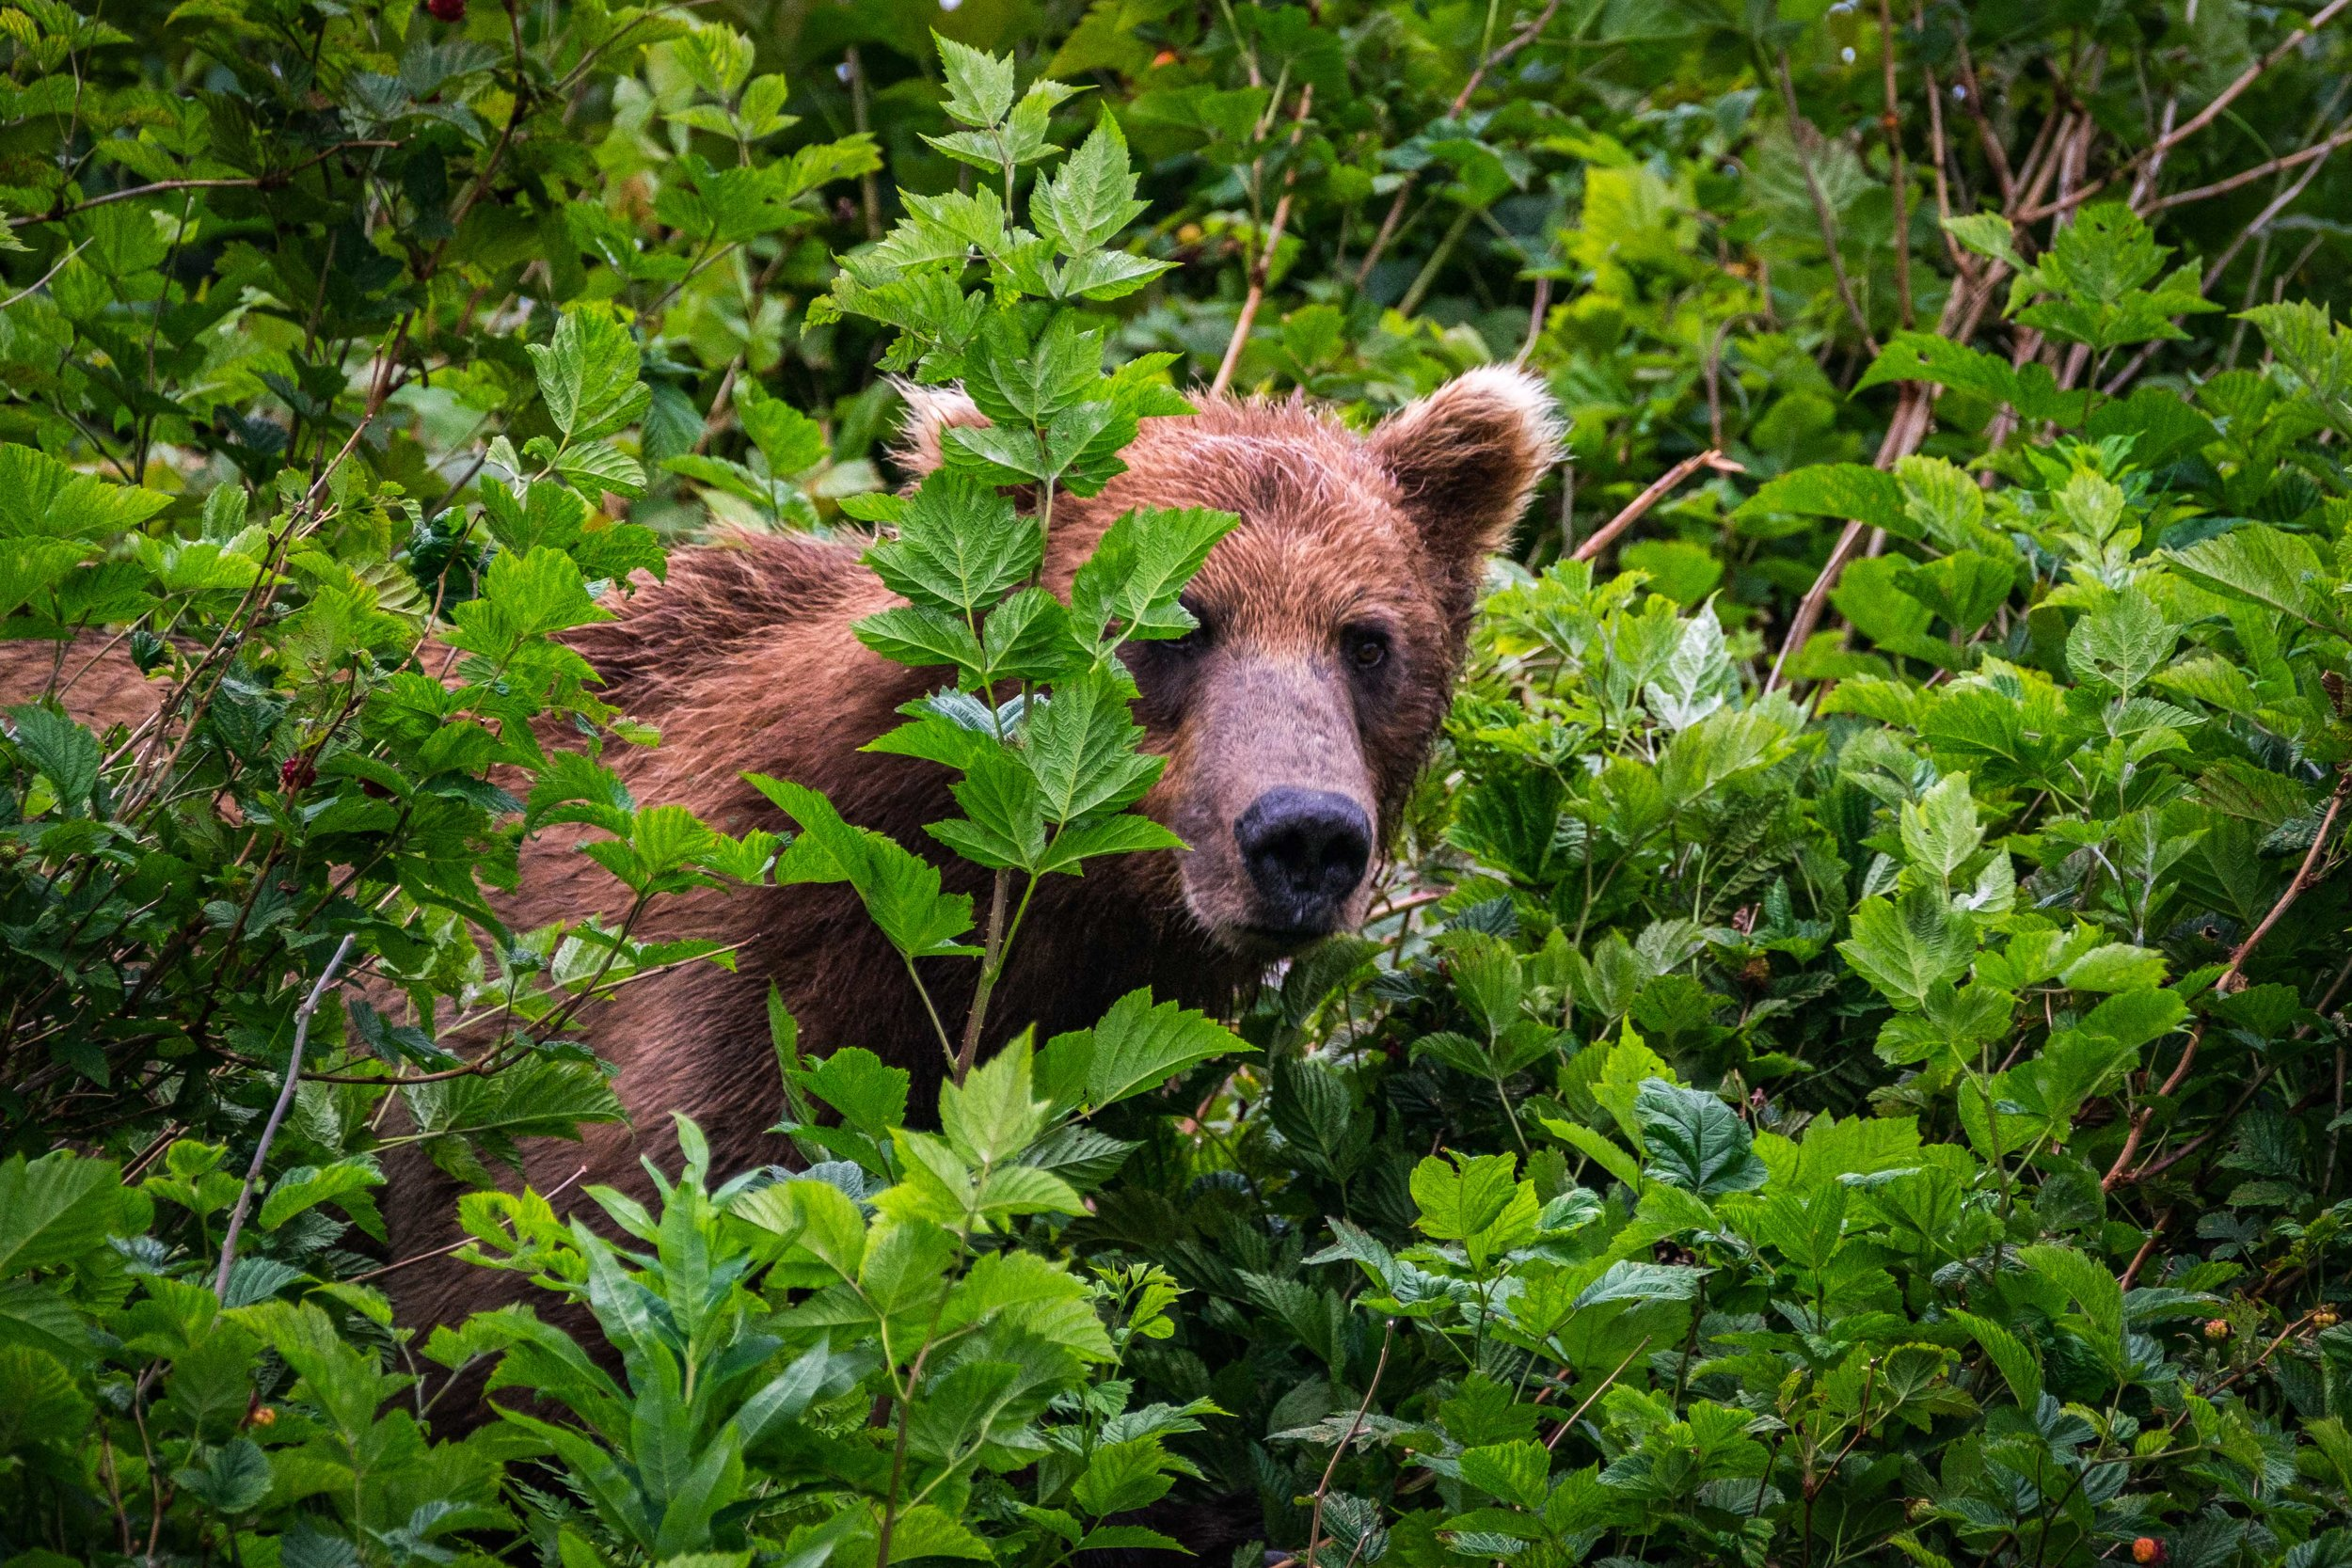 A coastal brown bear sow (mama) navigates dense alder in search of berries to feast on before hibernation.